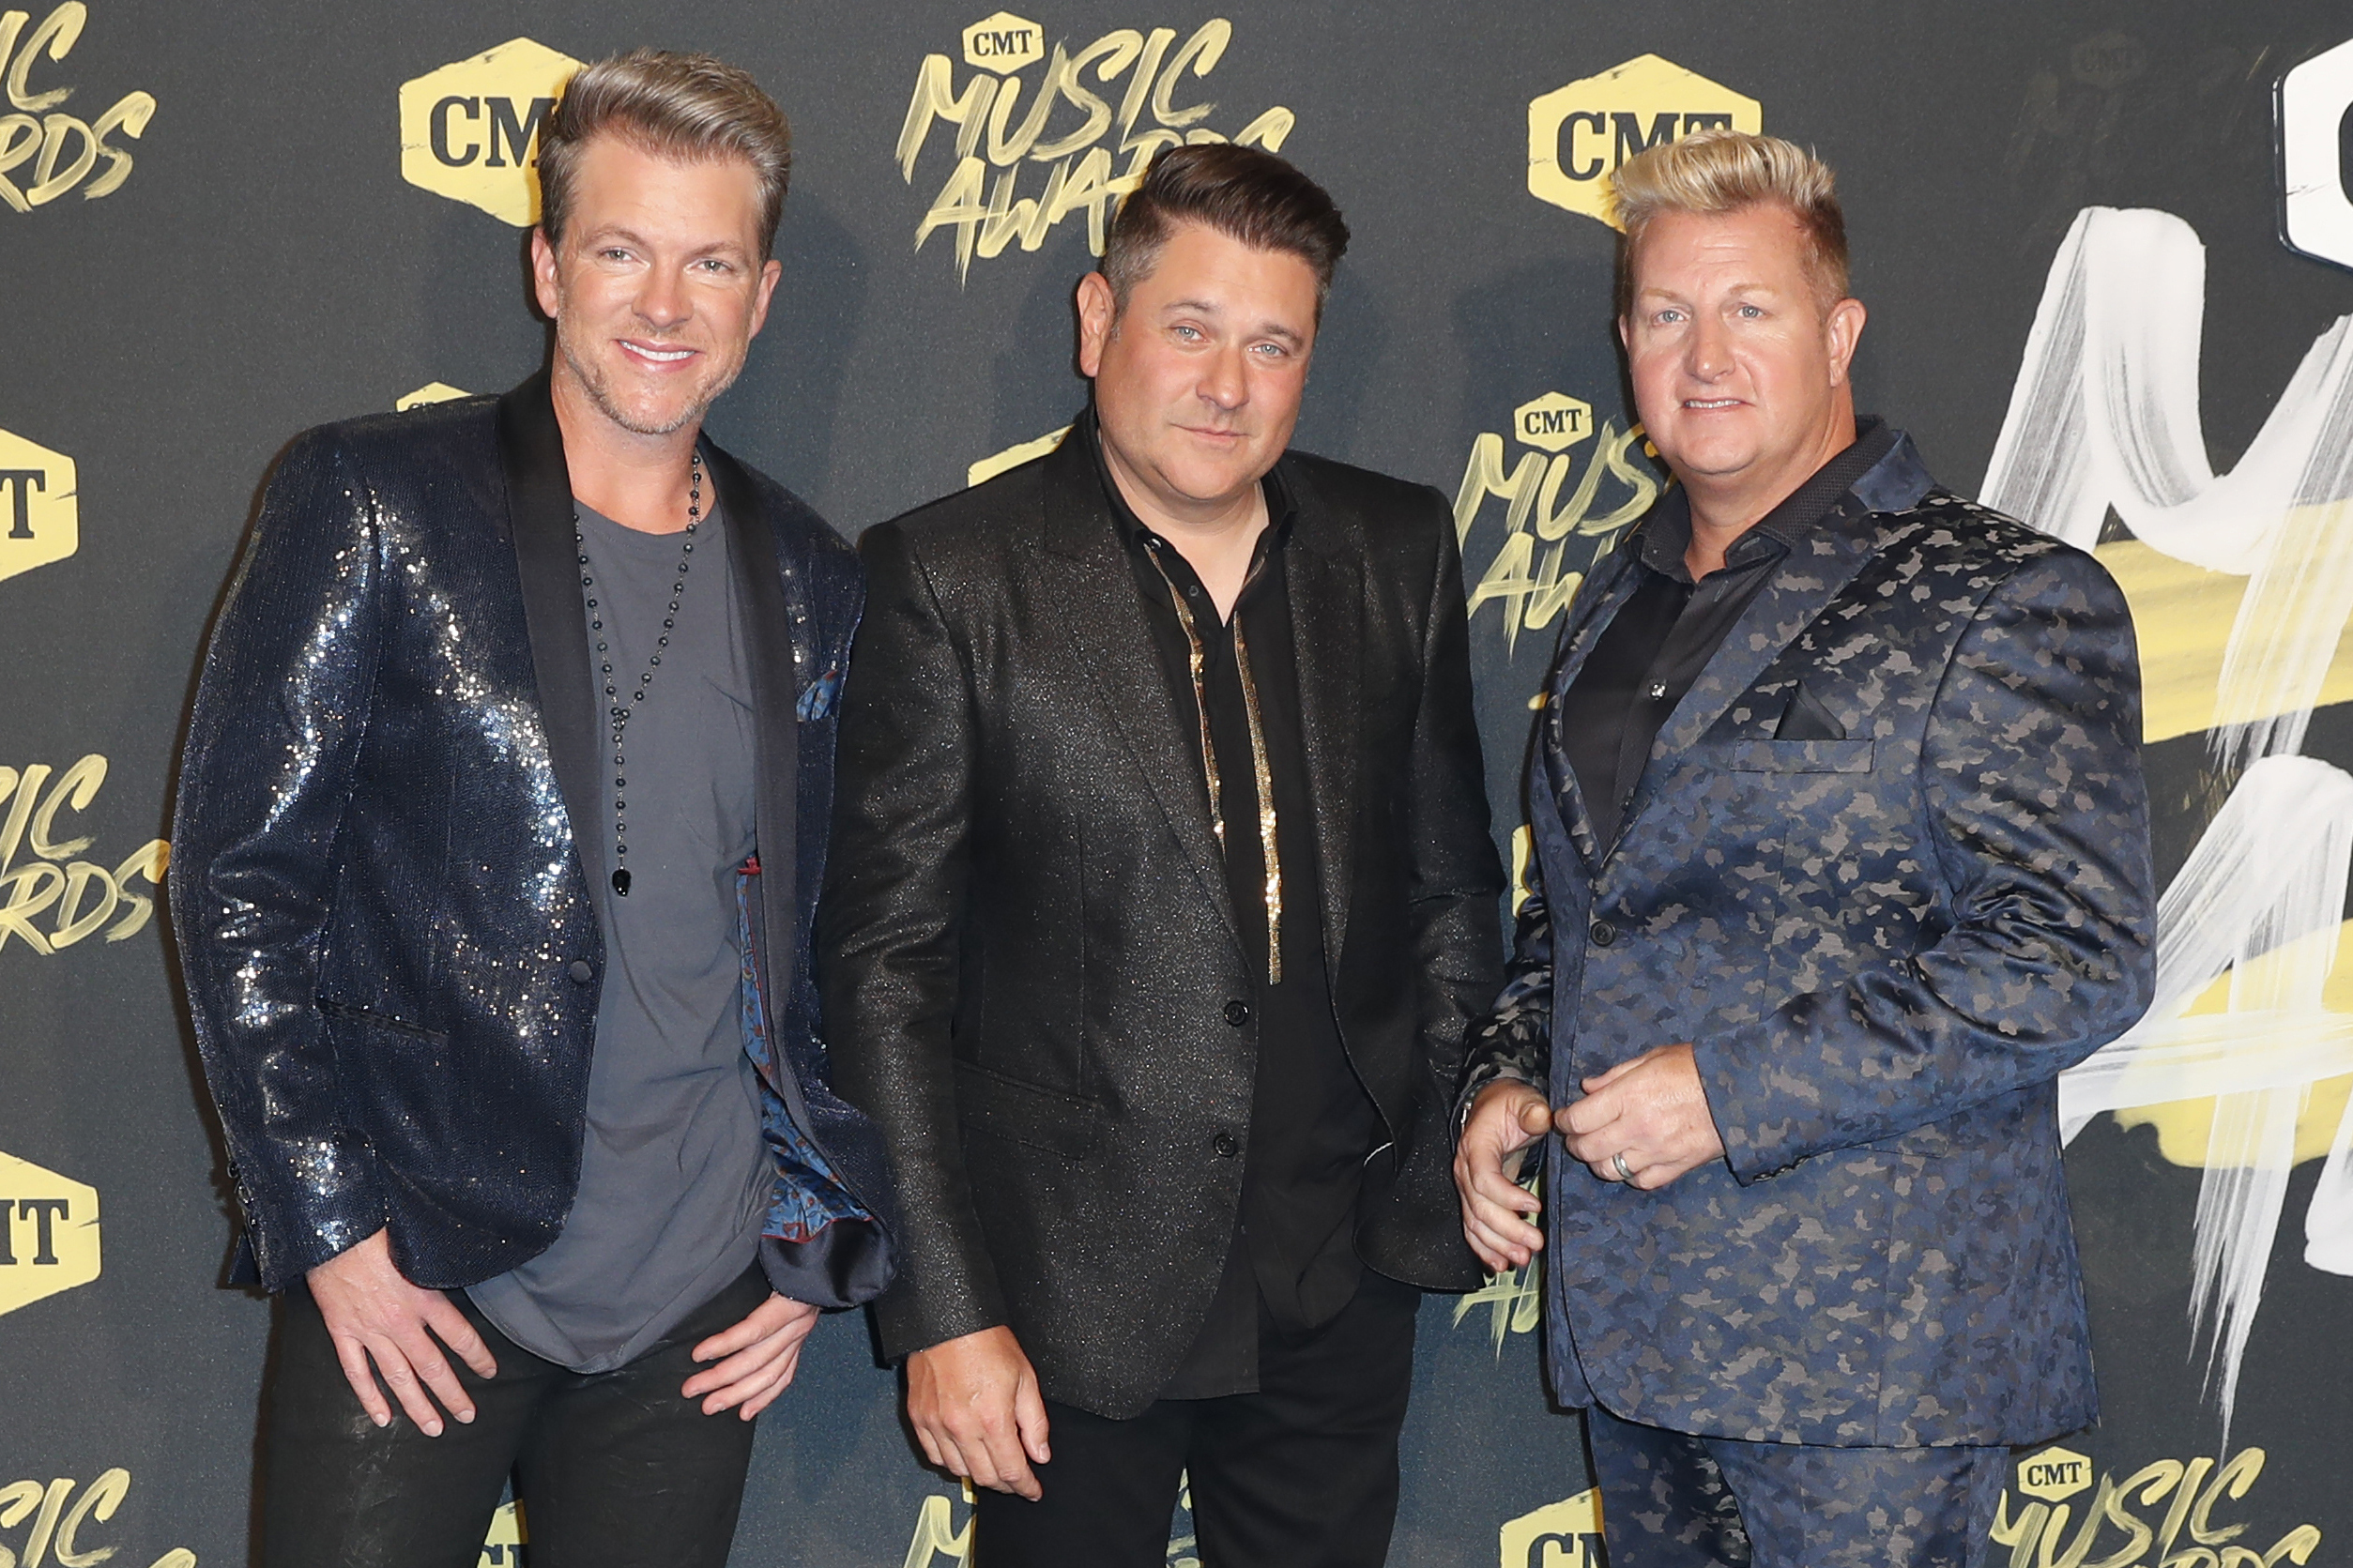 Joe Don Rooney (from left), Jay DeMarcus and Gary LeVox, of Rascal Flatts arrive at the 2018 CMT Music Awards in Nashville, Tennessee.